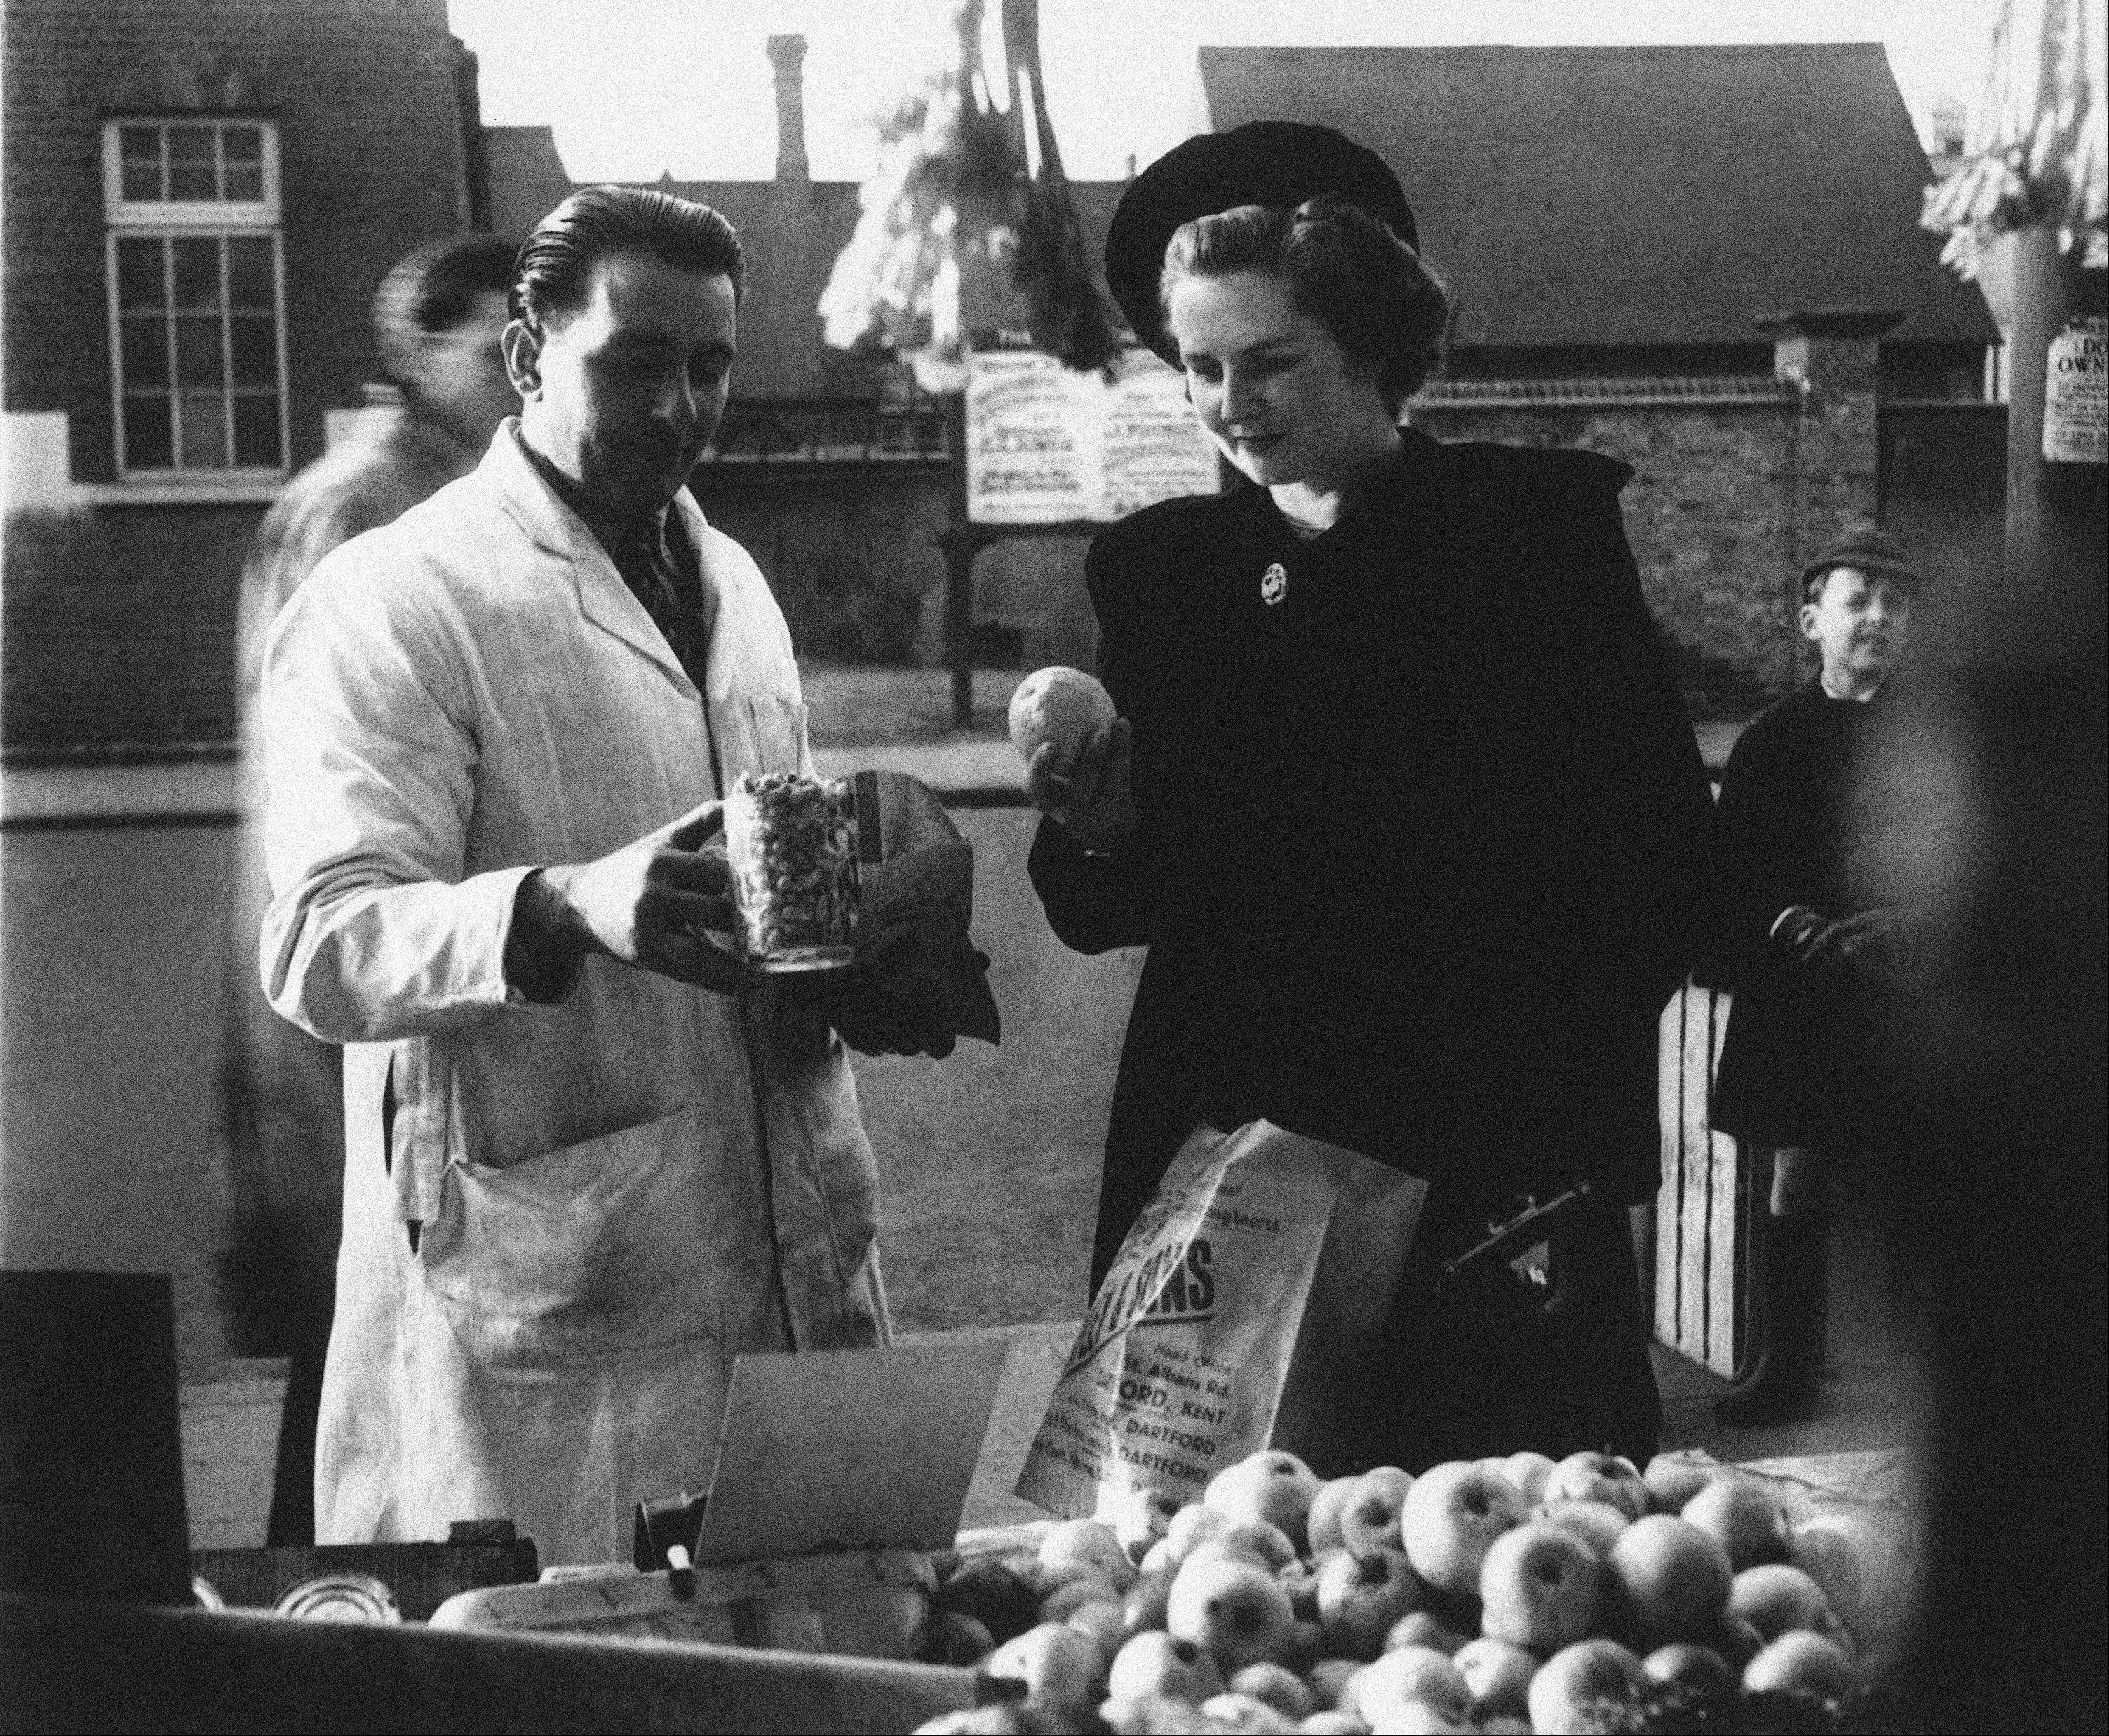 Youngest election candidate, conservative, Margaret Roberts (later Thatcher) buys a pint of peanuts and studies the quality of a lemon while shopping in Dartford, Kent, England in 1950, where she is standing as Tory M.P. Thatchers former spokesman, Tim Bell, said that the former British Prime Minister Margaret Thatcher had died Monday morning, April 8, 2013, of a stroke. She was 87.